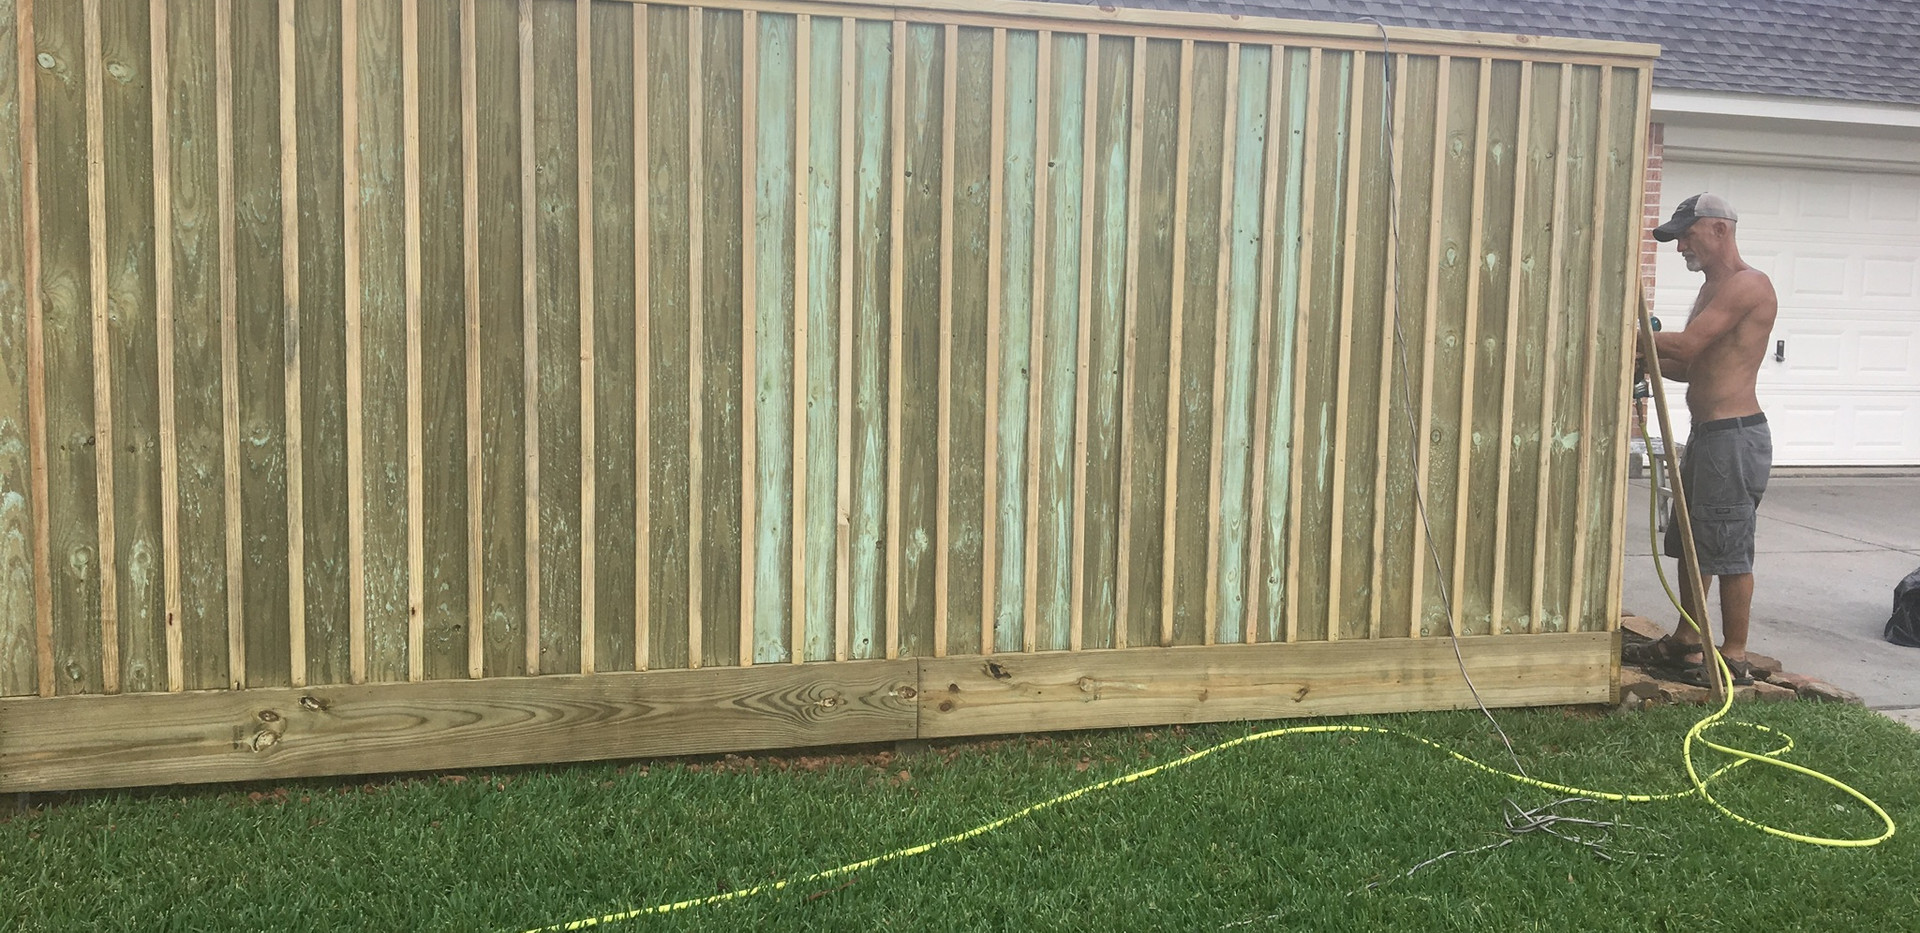 Double sided fence.jpg